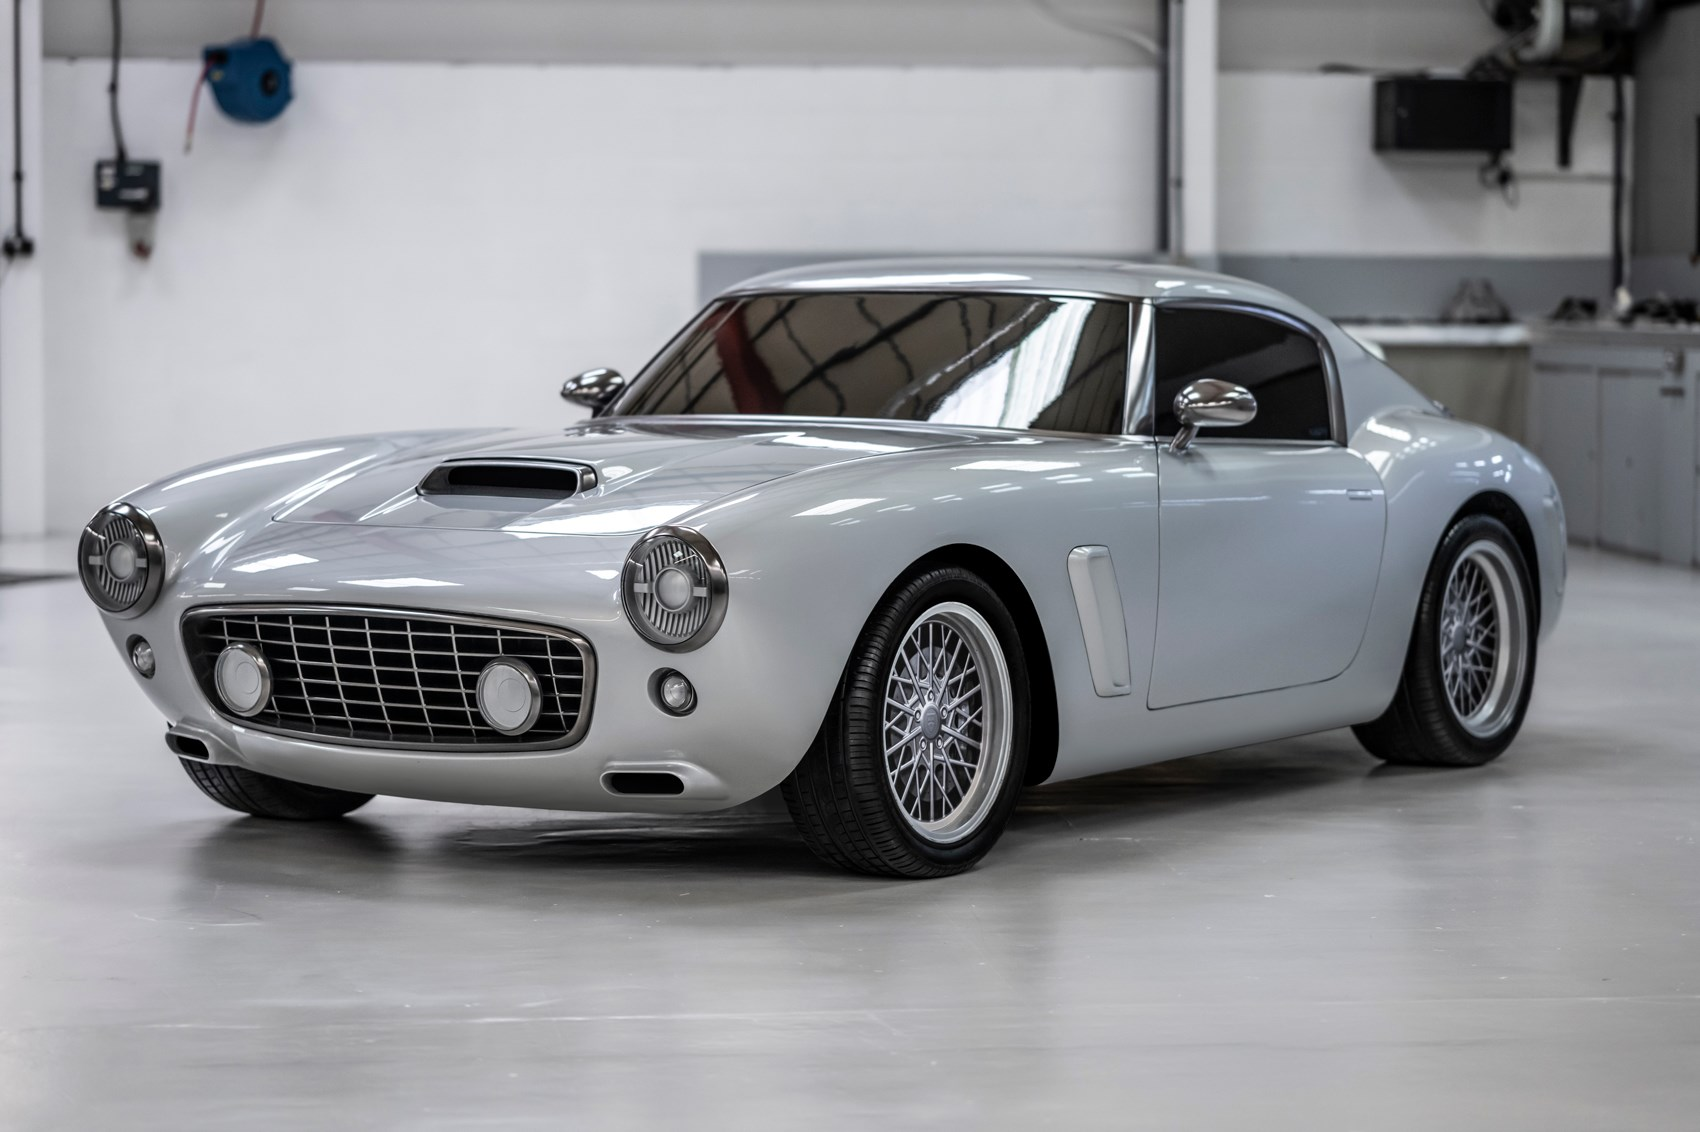 RML Short Wheelbase: Ferrari's 250 GT SWB reimagined